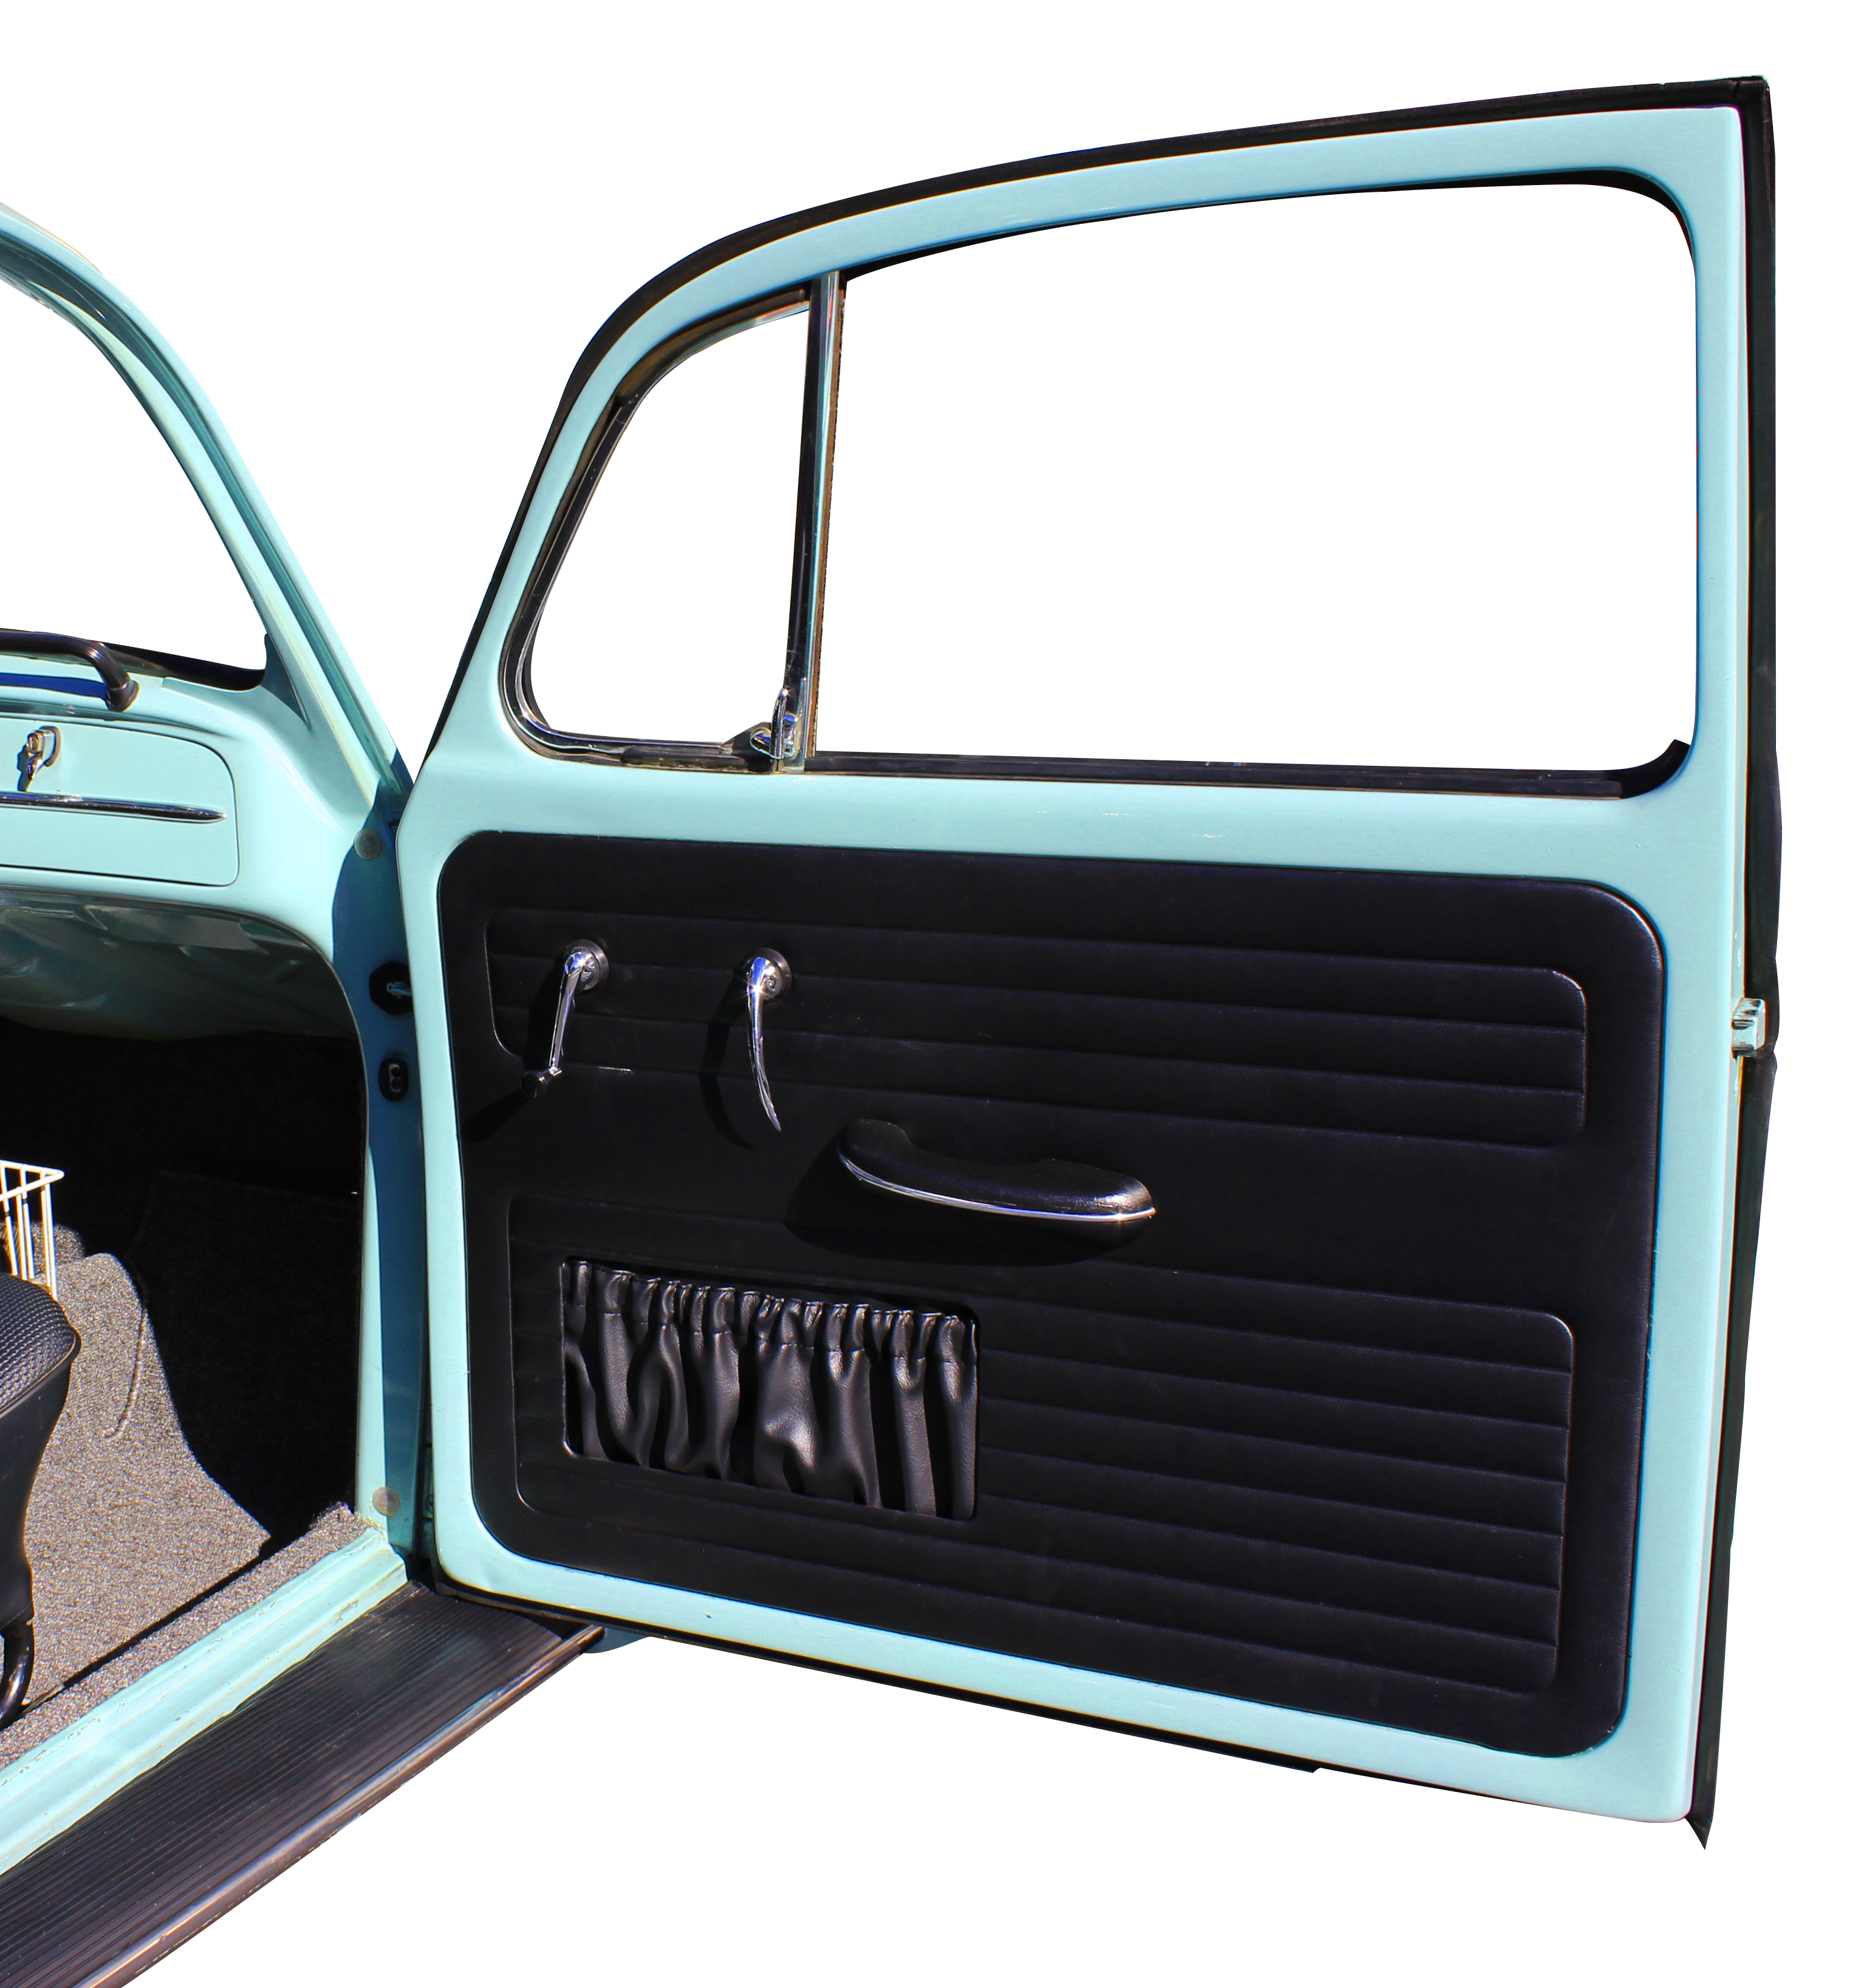 Vw Door Parts Amp Accessories Jbugs